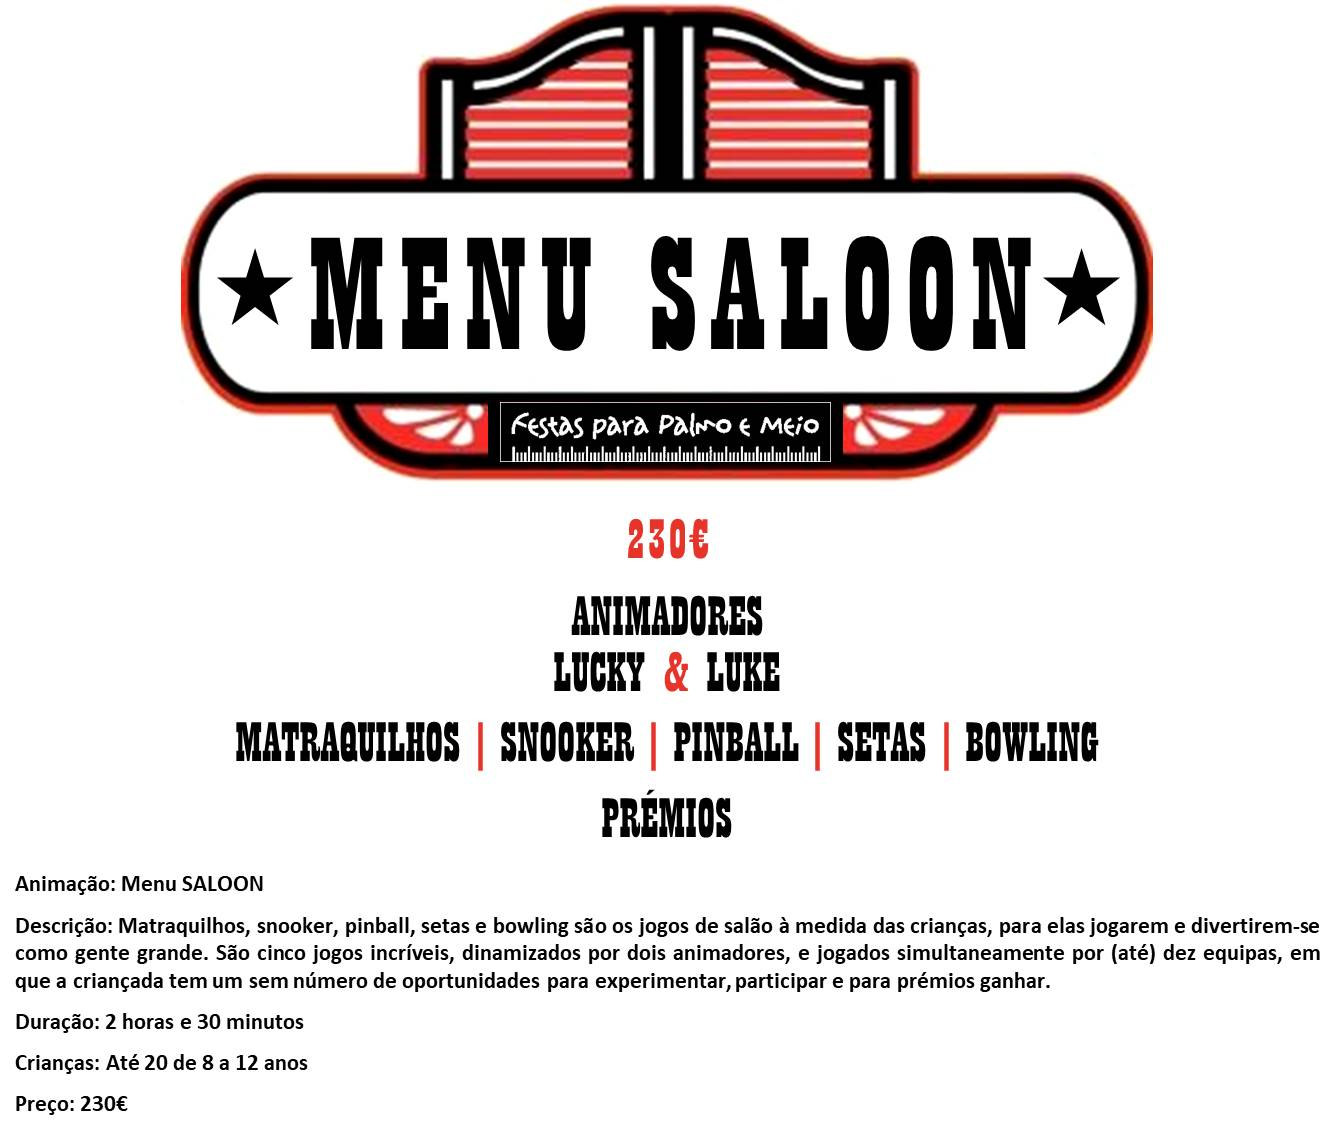 MENU SALOON